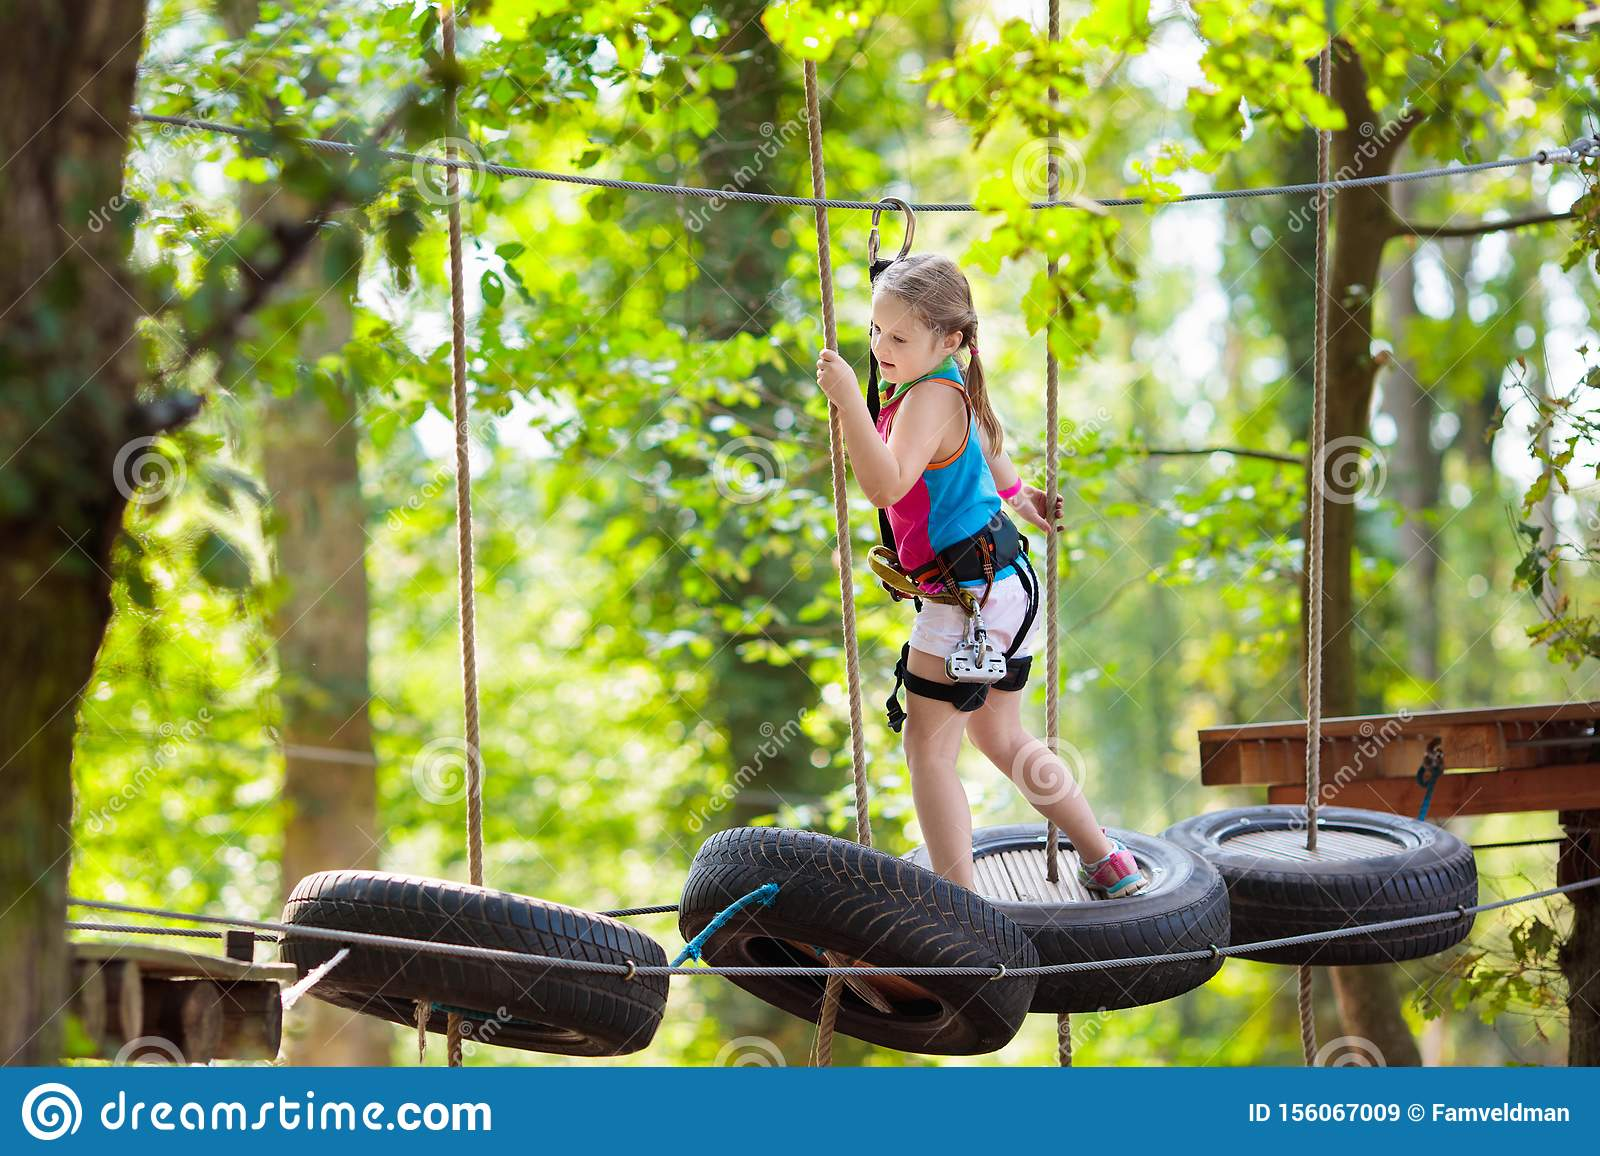 Child In Adventure Park Kids Climbing Rope Trail Stock Image Image Of Ground Extreme 156067009